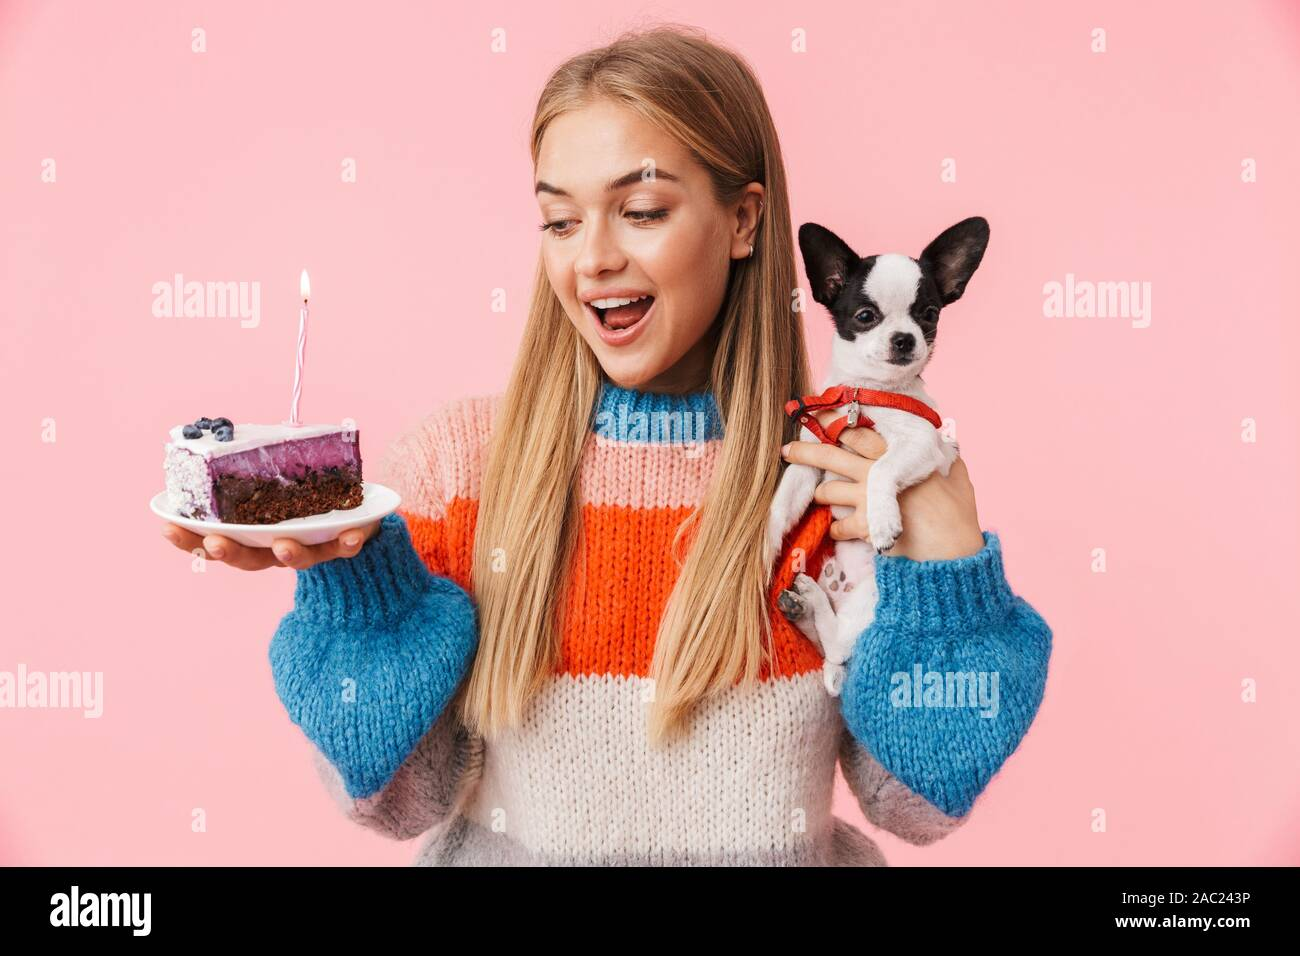 Swell Lovely Happy Young Girl Showing Piece Of Birthday Cake While Funny Birthday Cards Online Unhofree Goldxyz